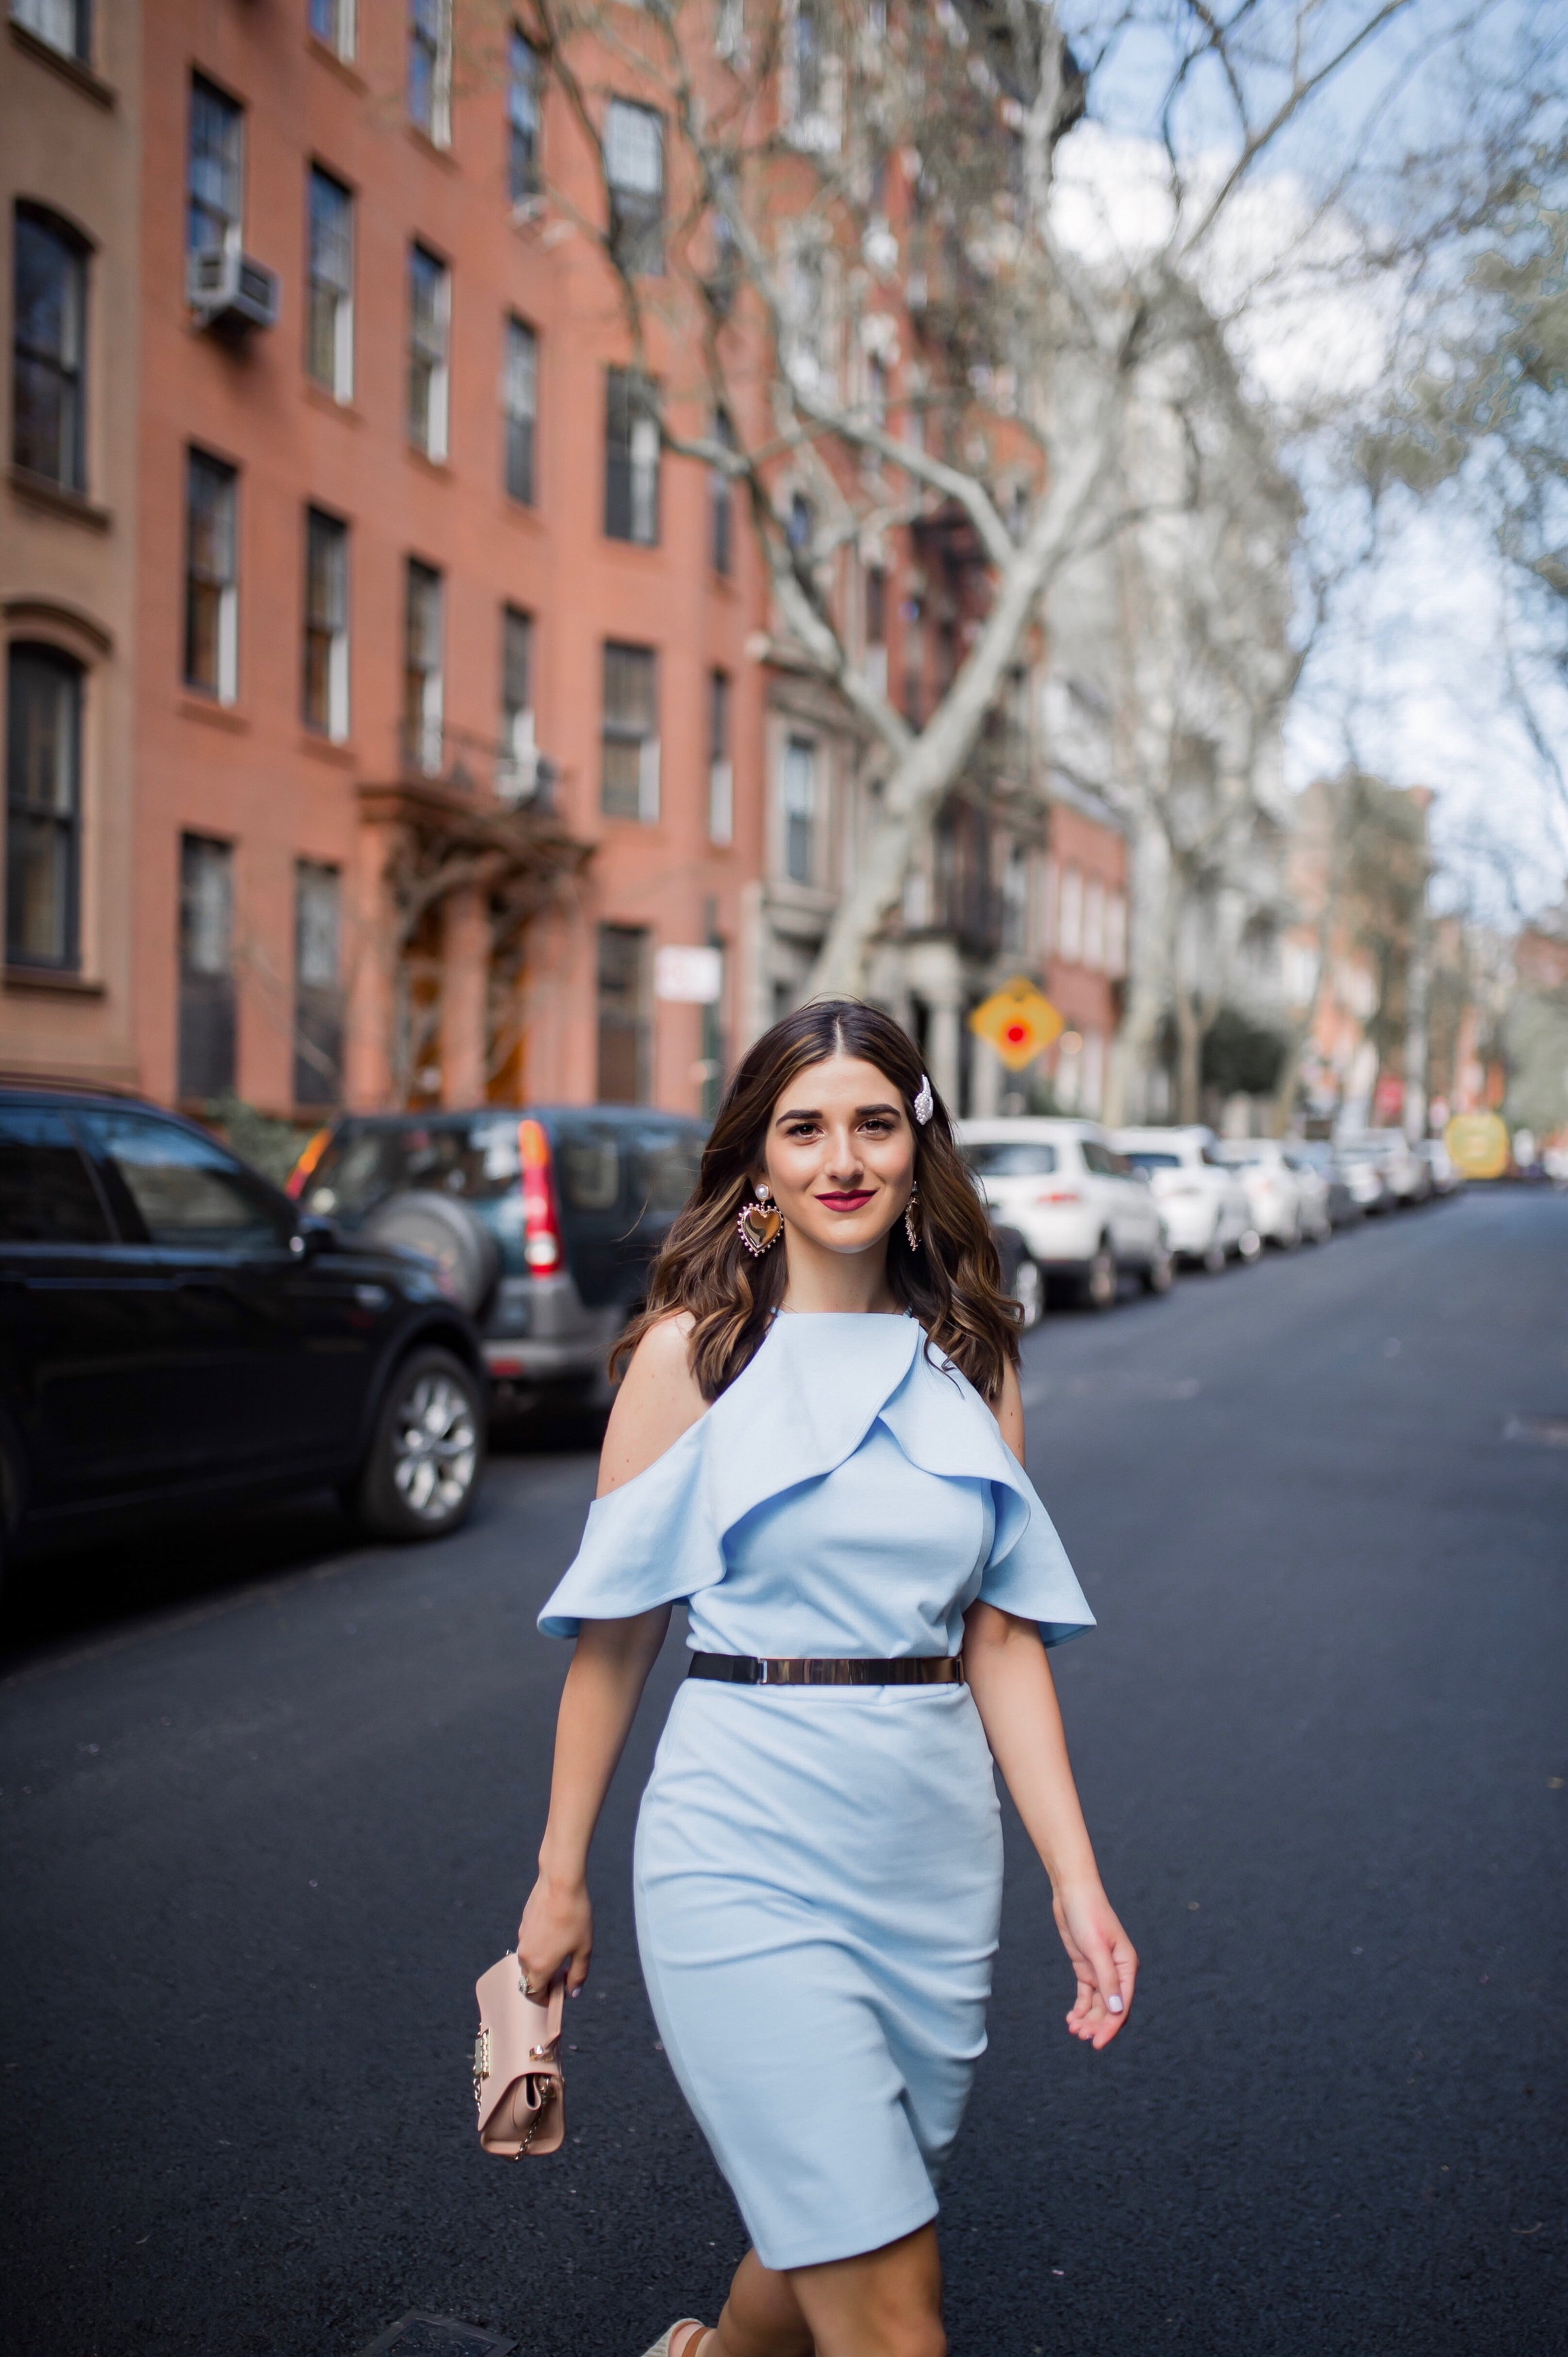 Styling XOXO For Spring Esther Santer Fashion Blog NYC Street Style Blogger Outfit OOTD Trendy Shopping Baby Blue Cold Shoulder Dress Espadrille Wedges Tan Girl Women Barette Pearl Clip Flowers Pretty Beautiful Pink Bag Belt Shoes Shopping Accessories.jpg